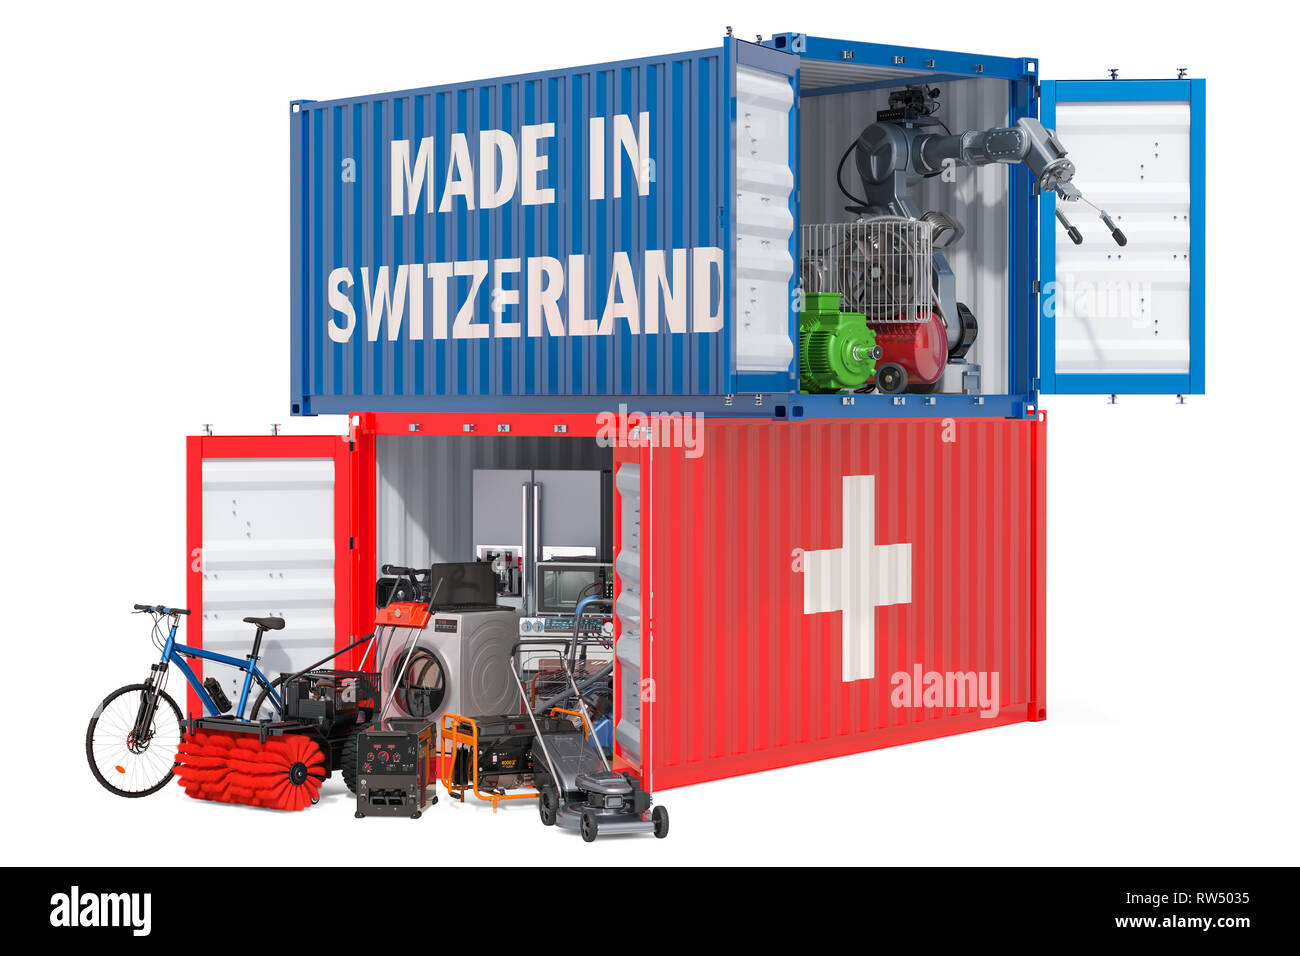 Production and shipping of electronic and appliances from Switzerland, 3D rendering isolated on white background - Stock Image